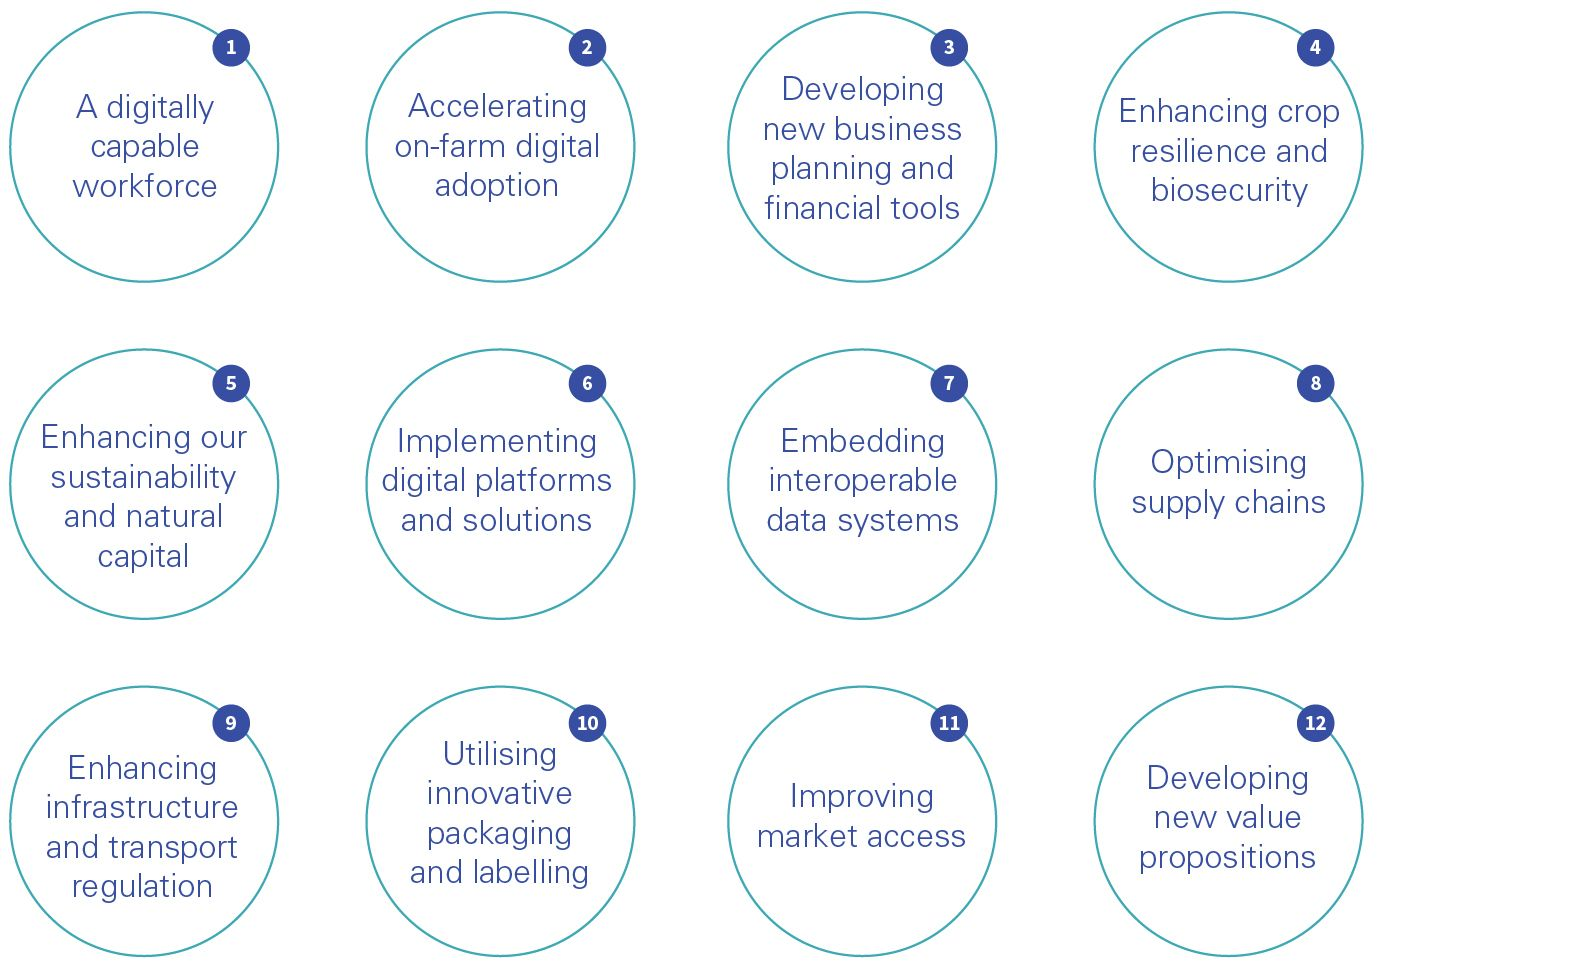 12 themes of agrifood for supply chain resilience